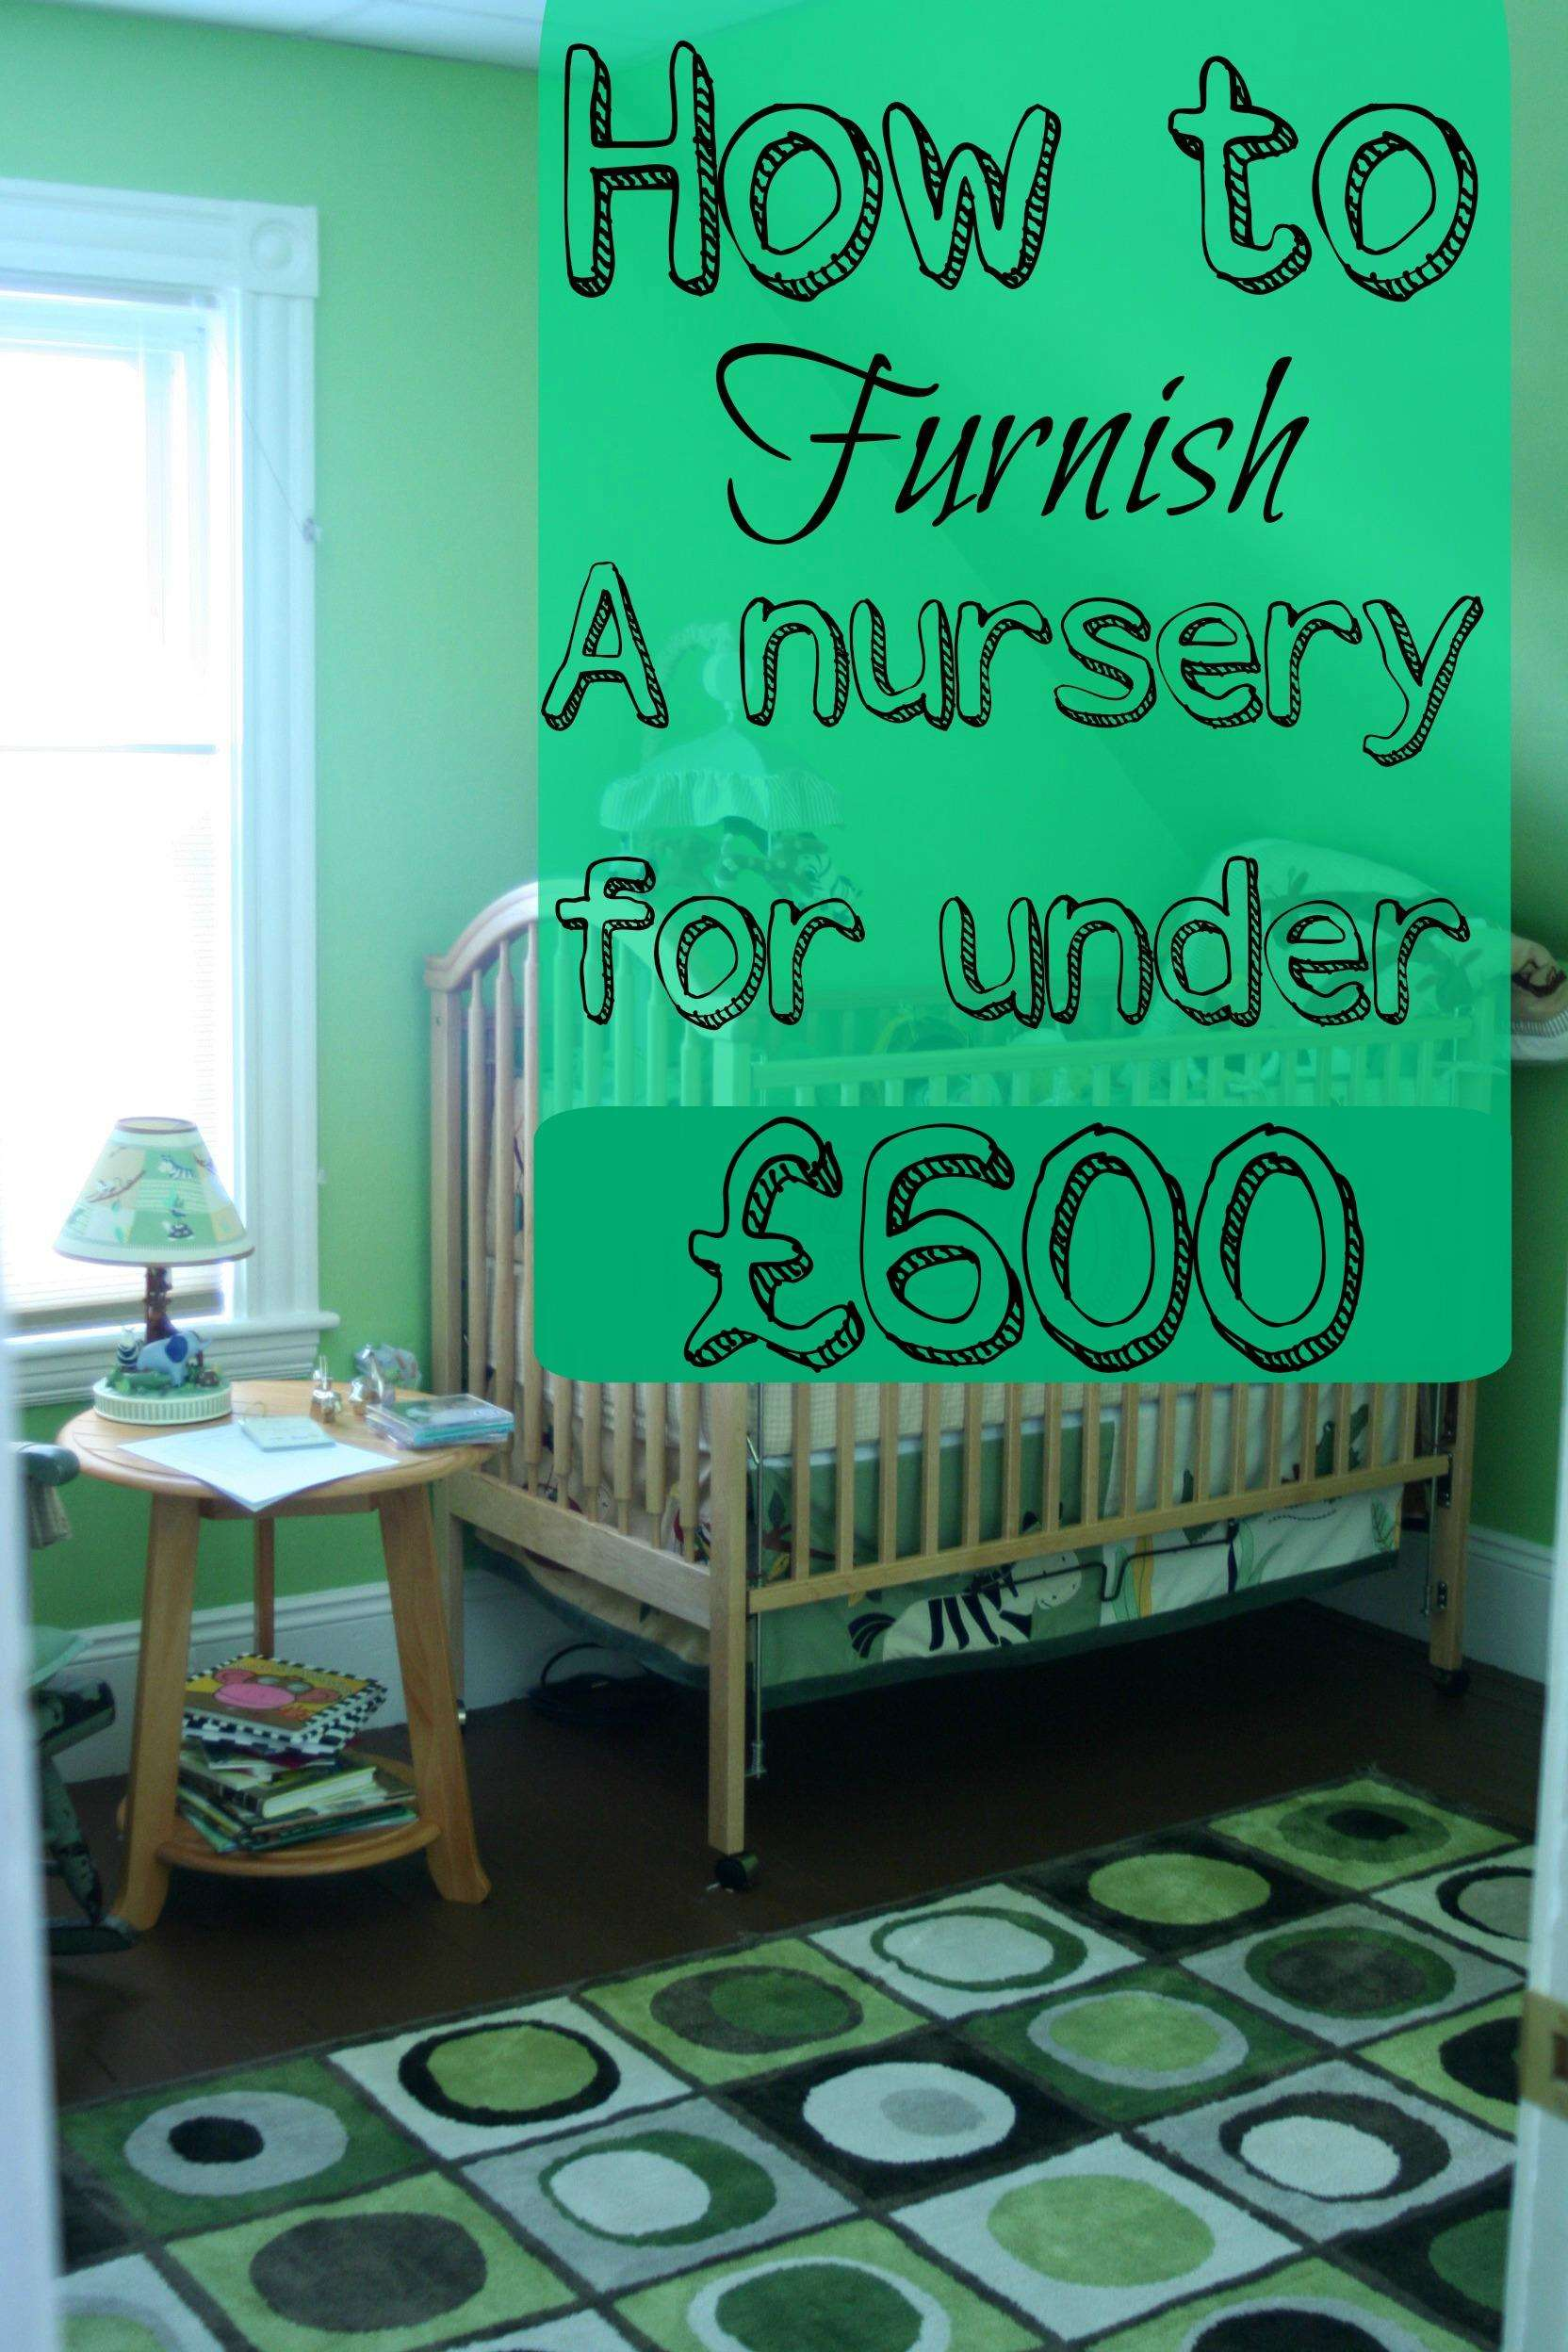 How to Furnish a Nursery for under £600, Nursery1%, new-dad%